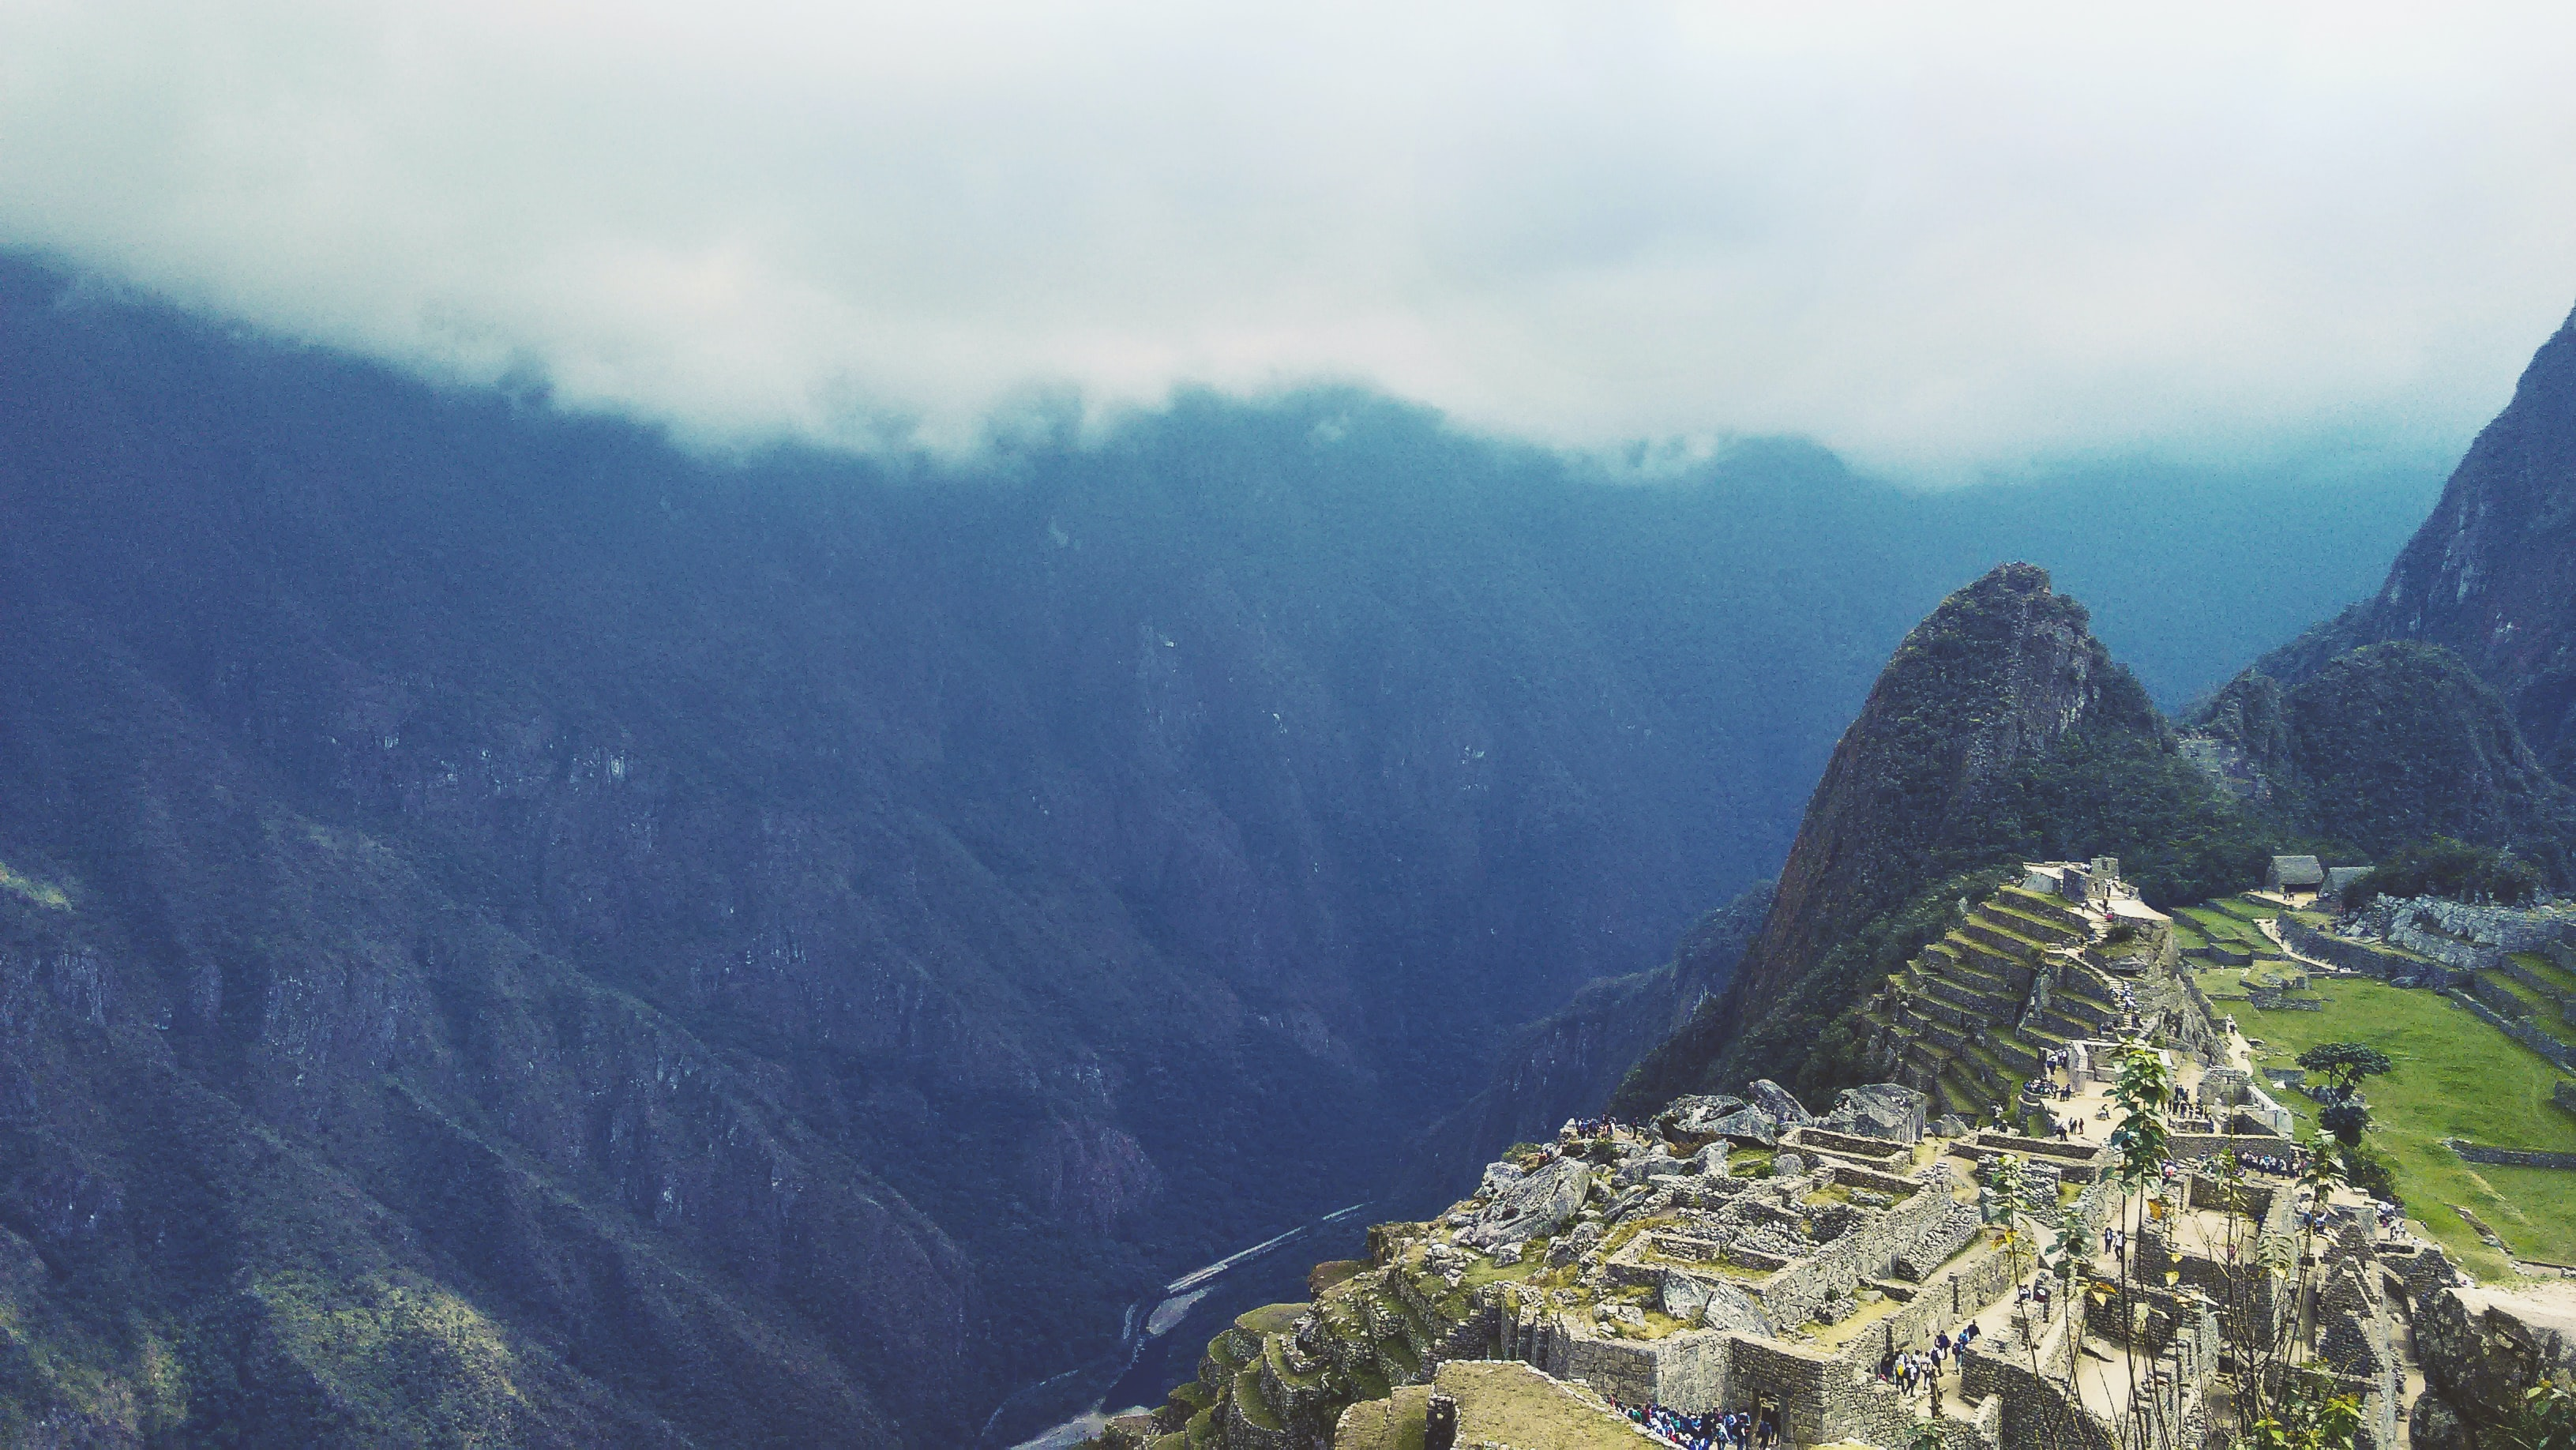 aerial photo of Machu Picchu